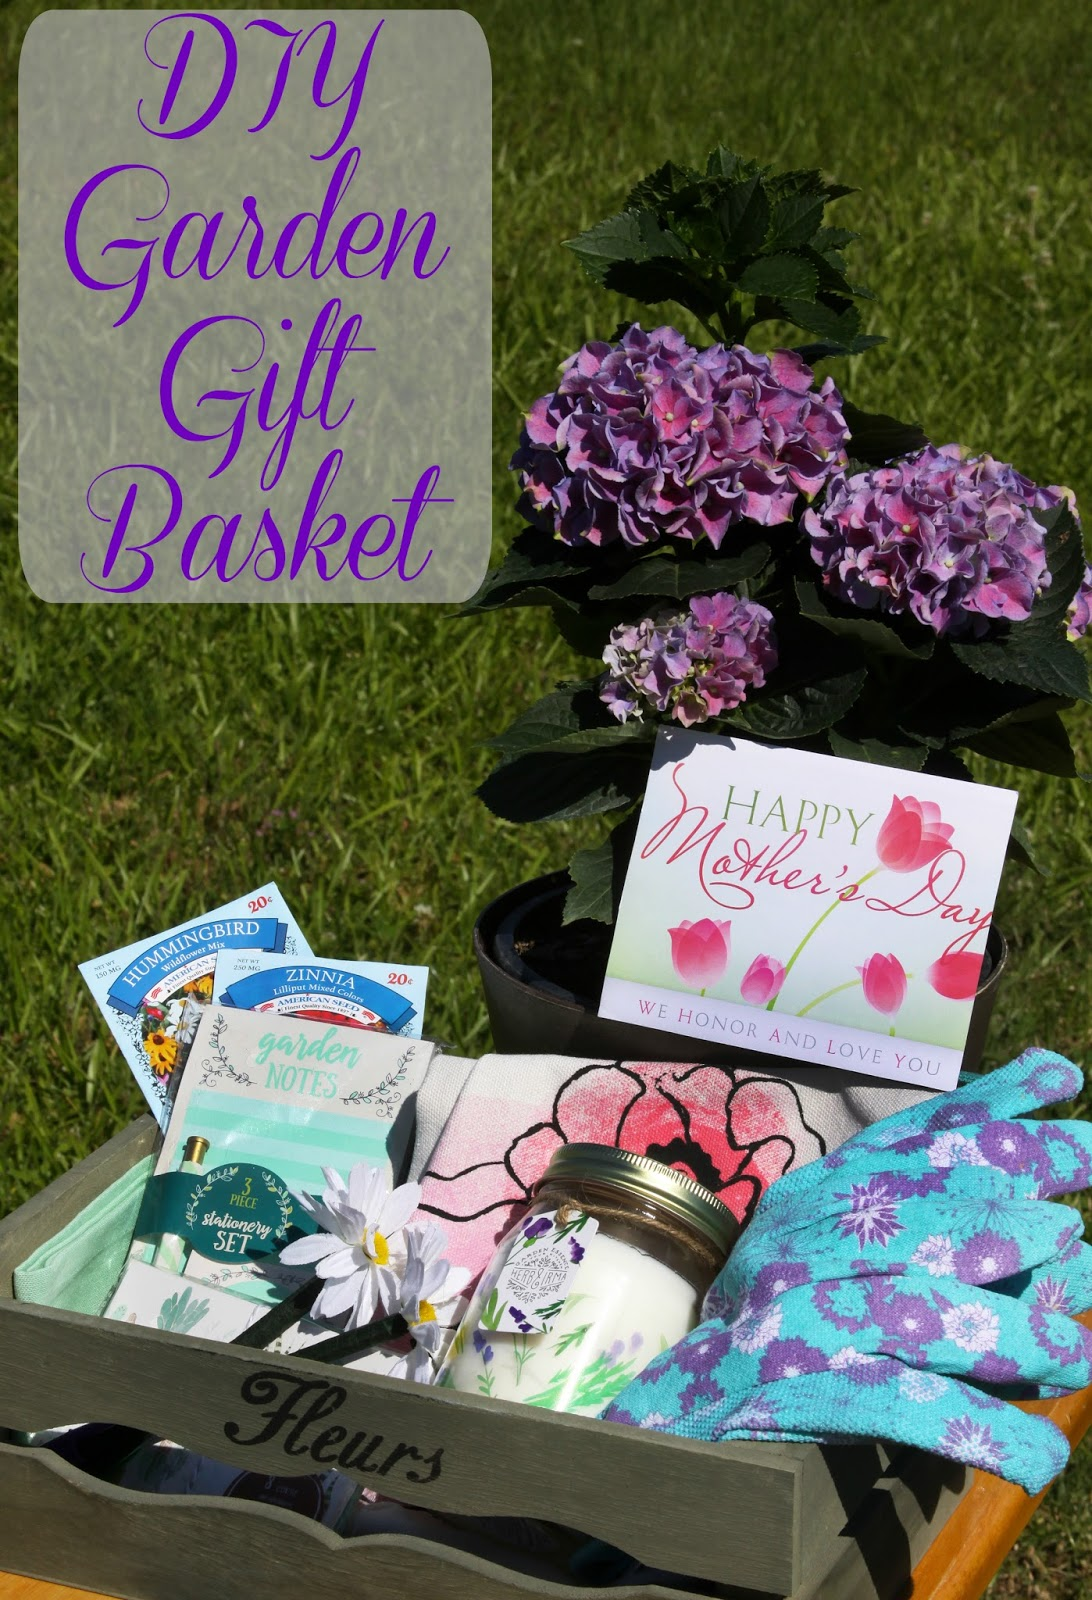 Awesome Diy Mother's Day Gifts For The Love Of Food Diy Garden Essential Oils Gift Baskets For